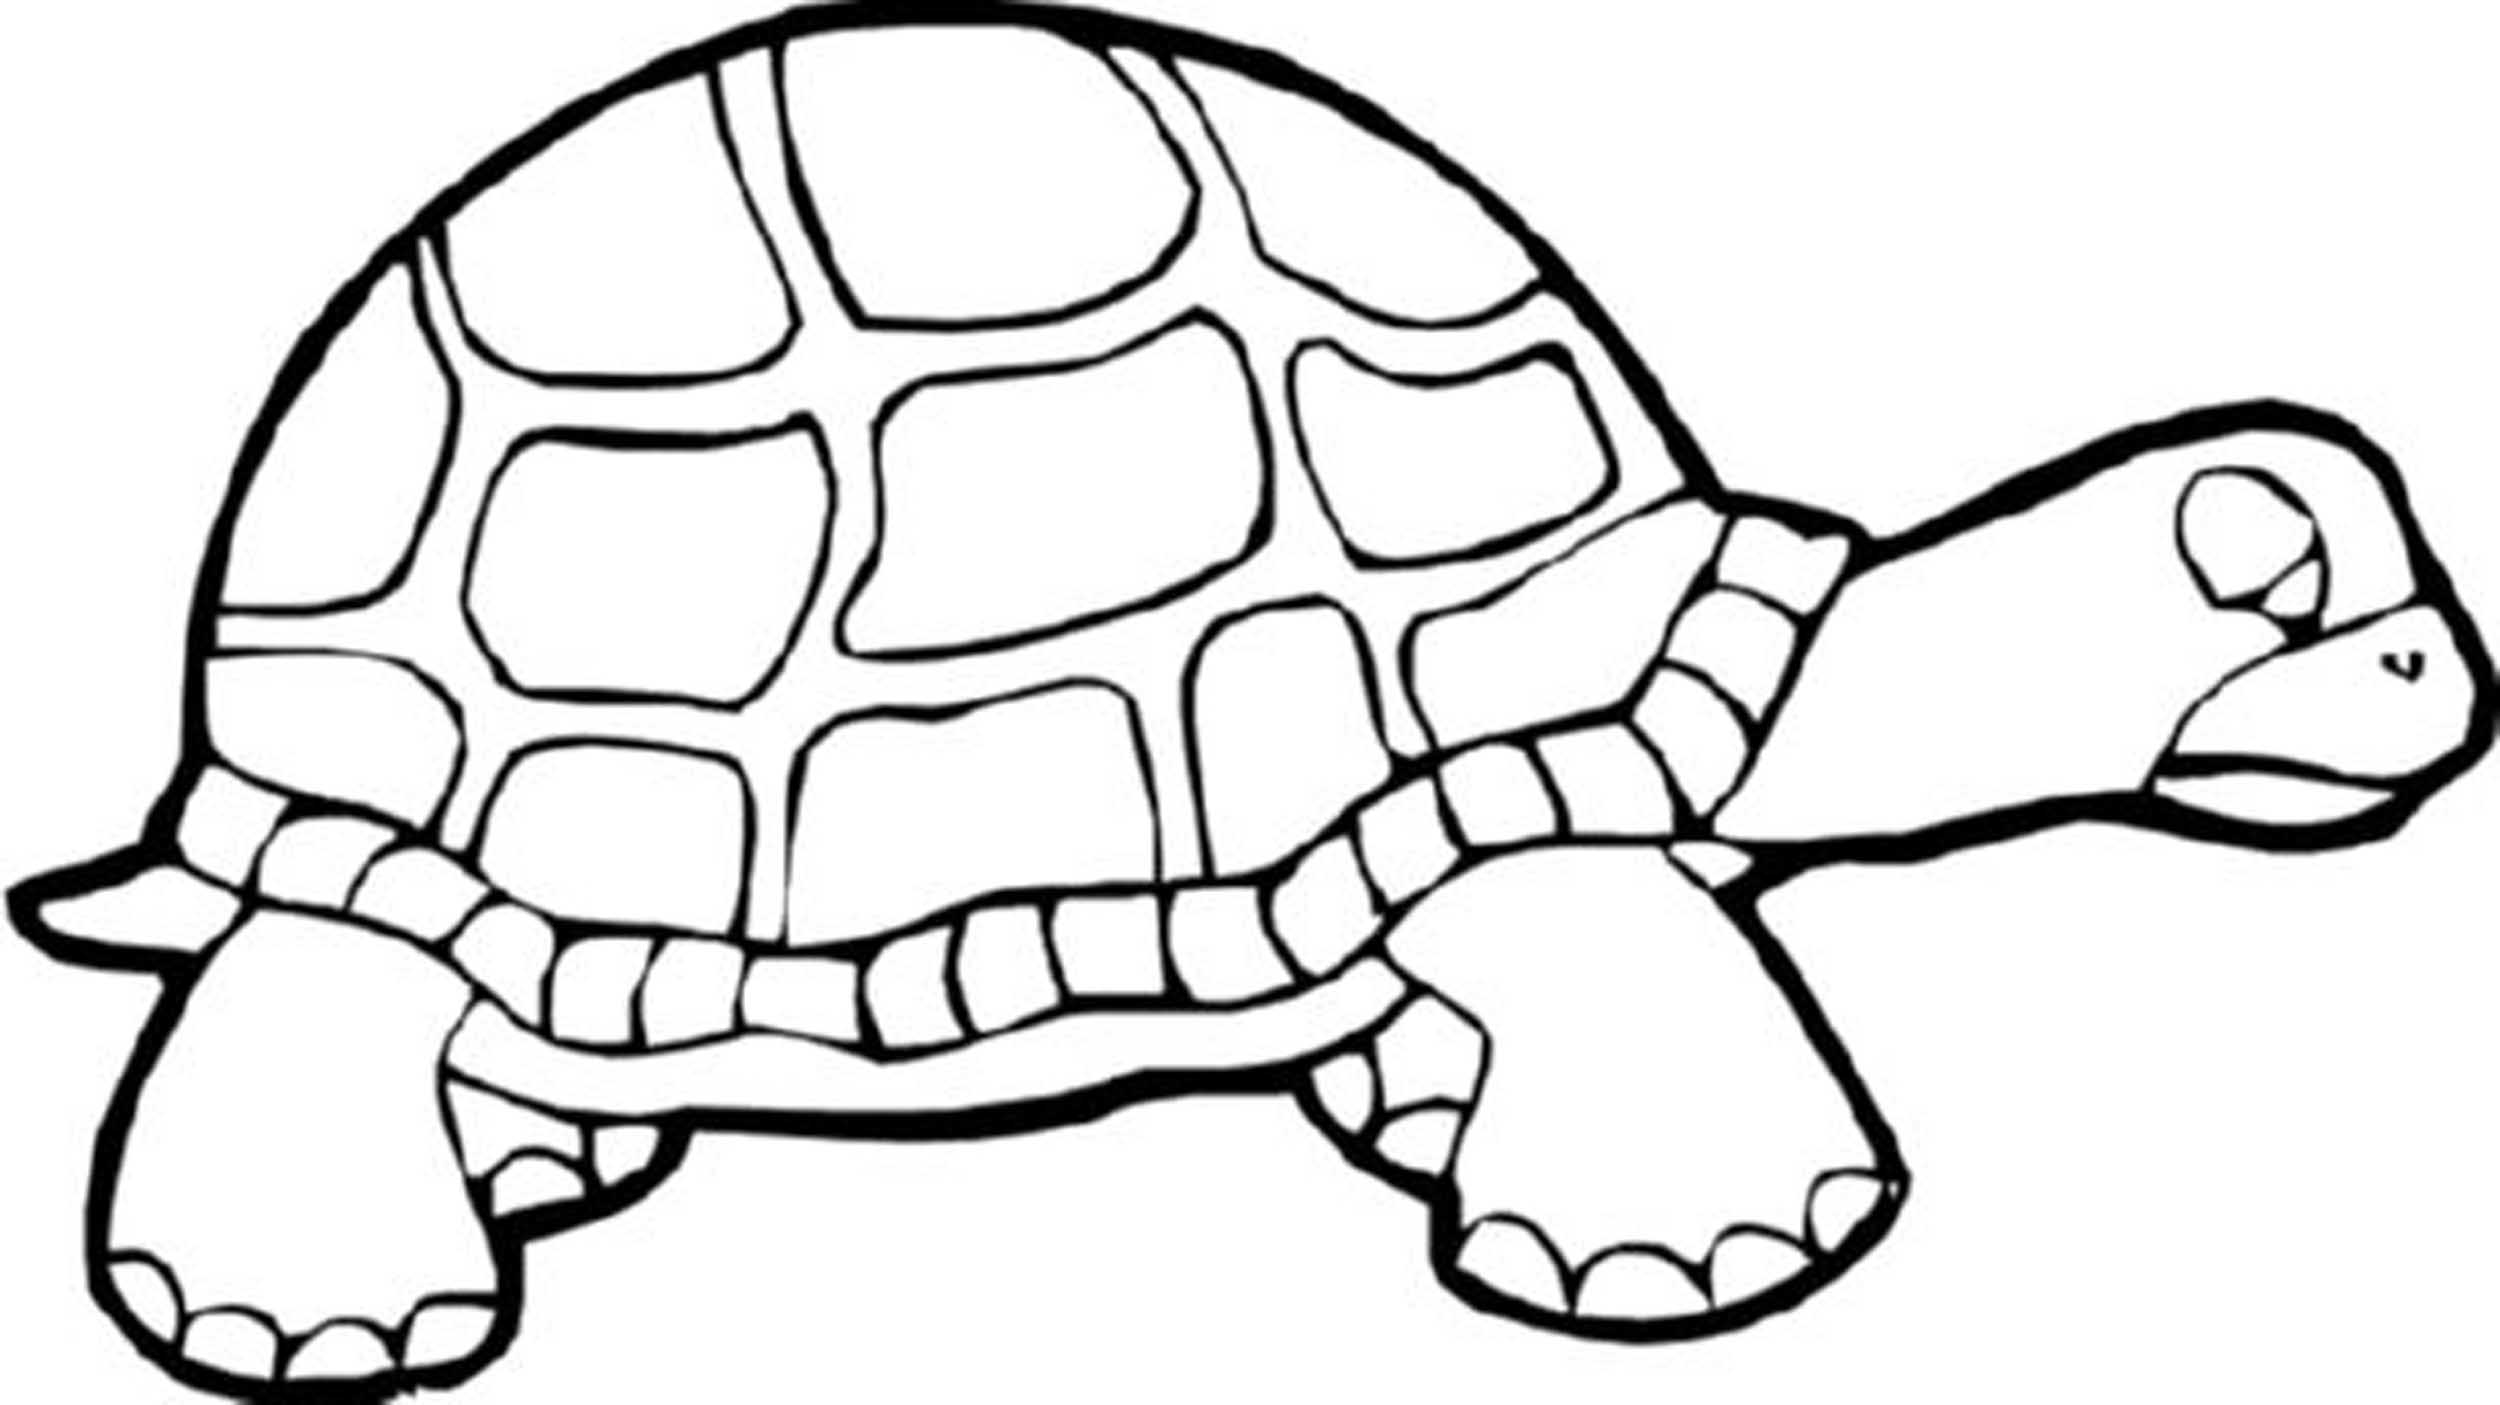 tortoise coloring page turtles coloring pages download and print turtles coloring page tortoise